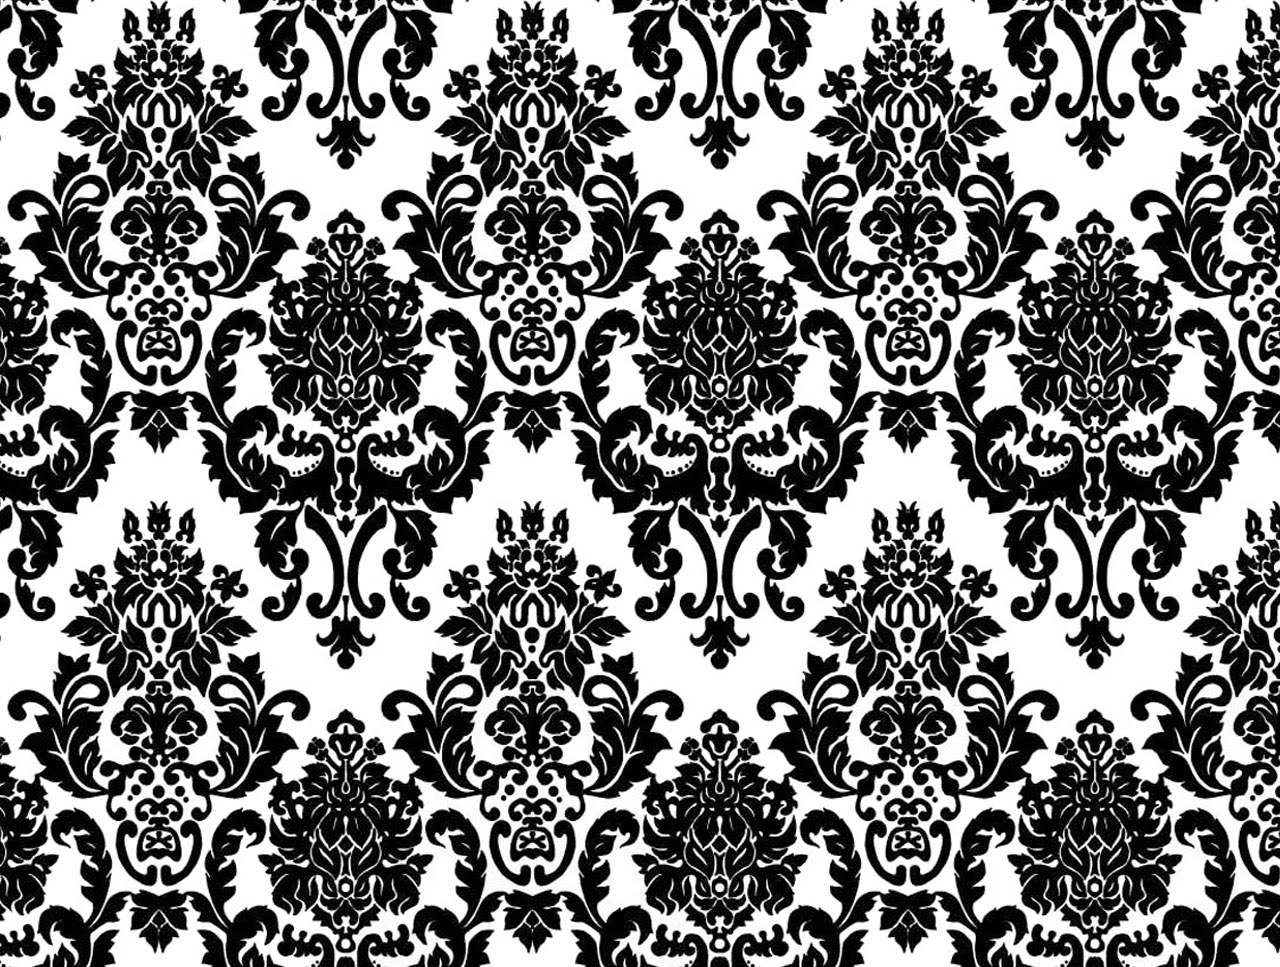 Mix Damask Wallpaper Wallpaperyork Brows Your HD Wallpapers Download Free Images Wallpaper [1000image.com]